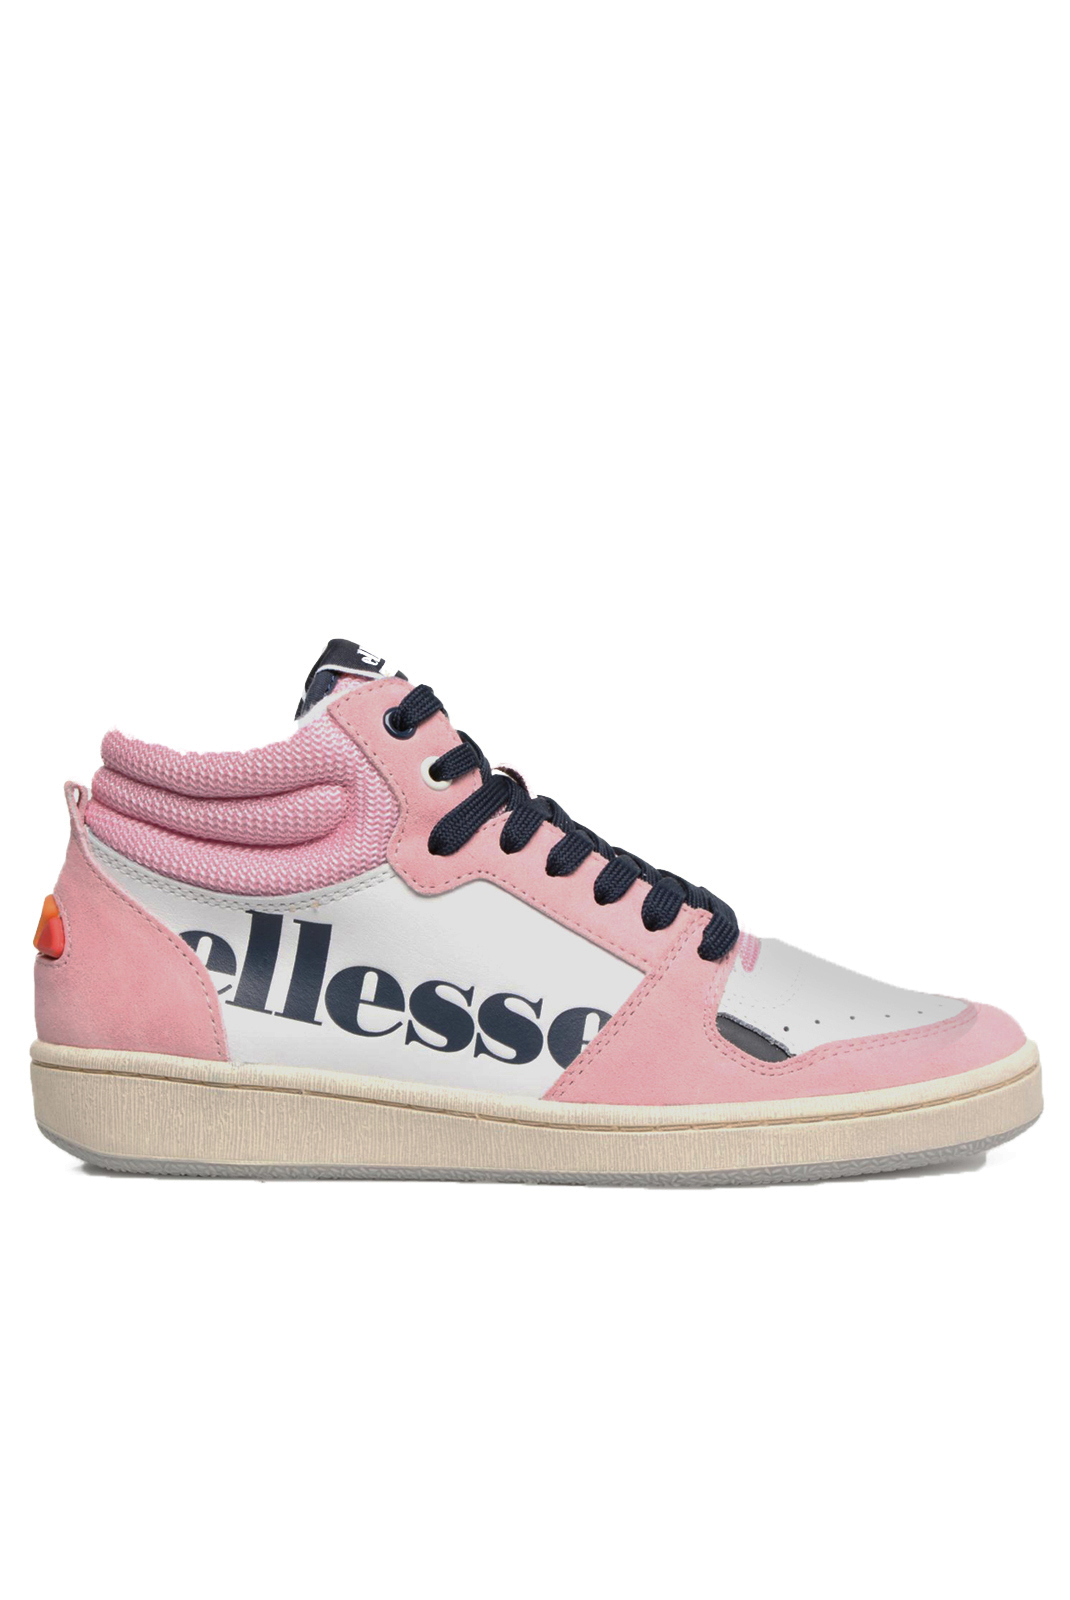 Baskets / Sneakers  Ellesse EL82449 F 04 WHITE PINK PINK